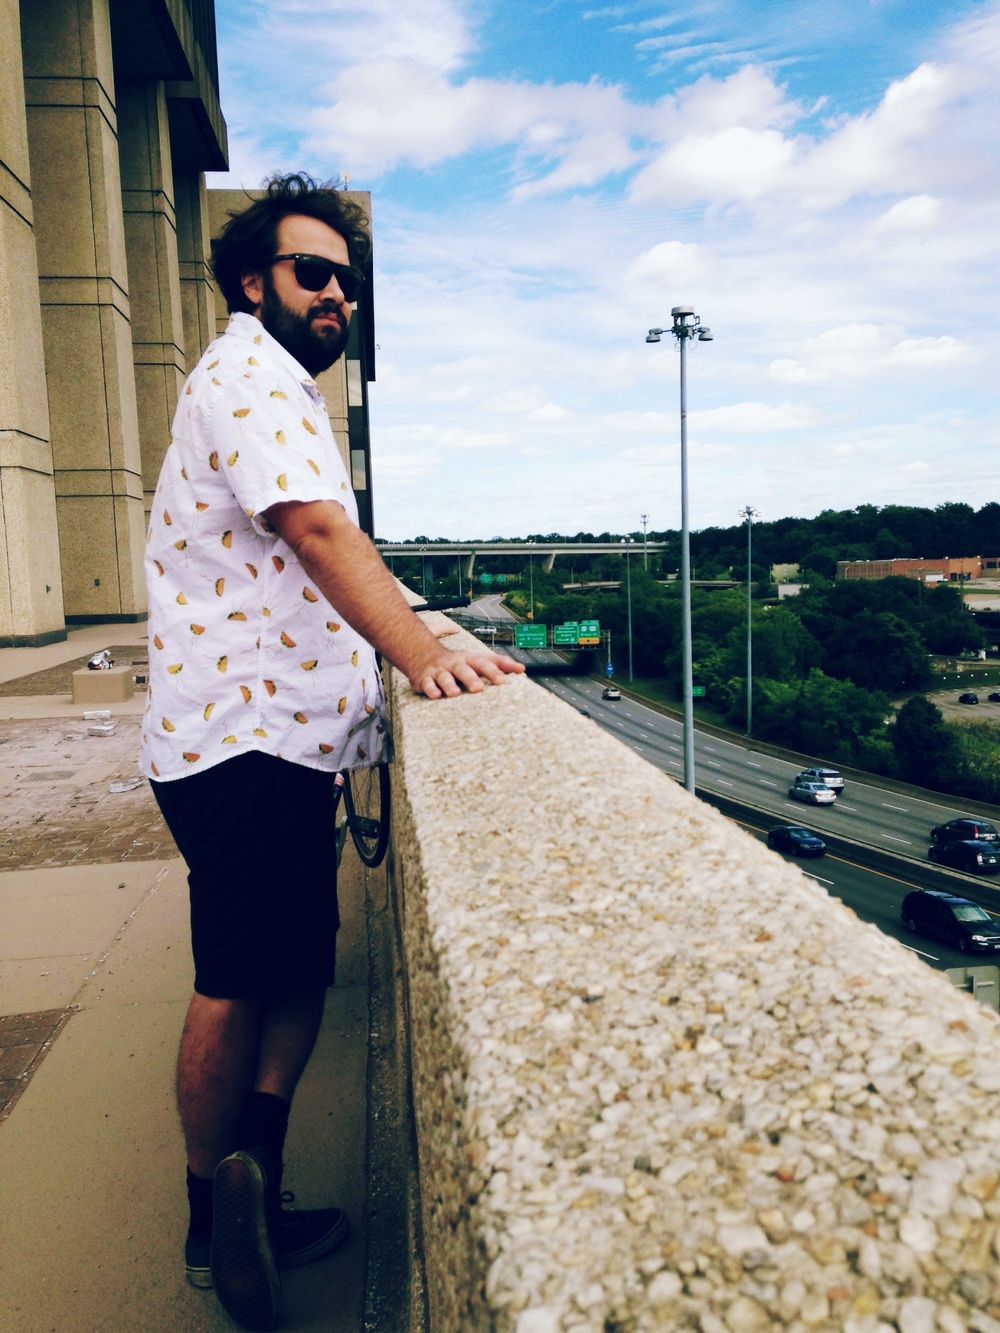 Jd overlooking Richmond in a taco shirt